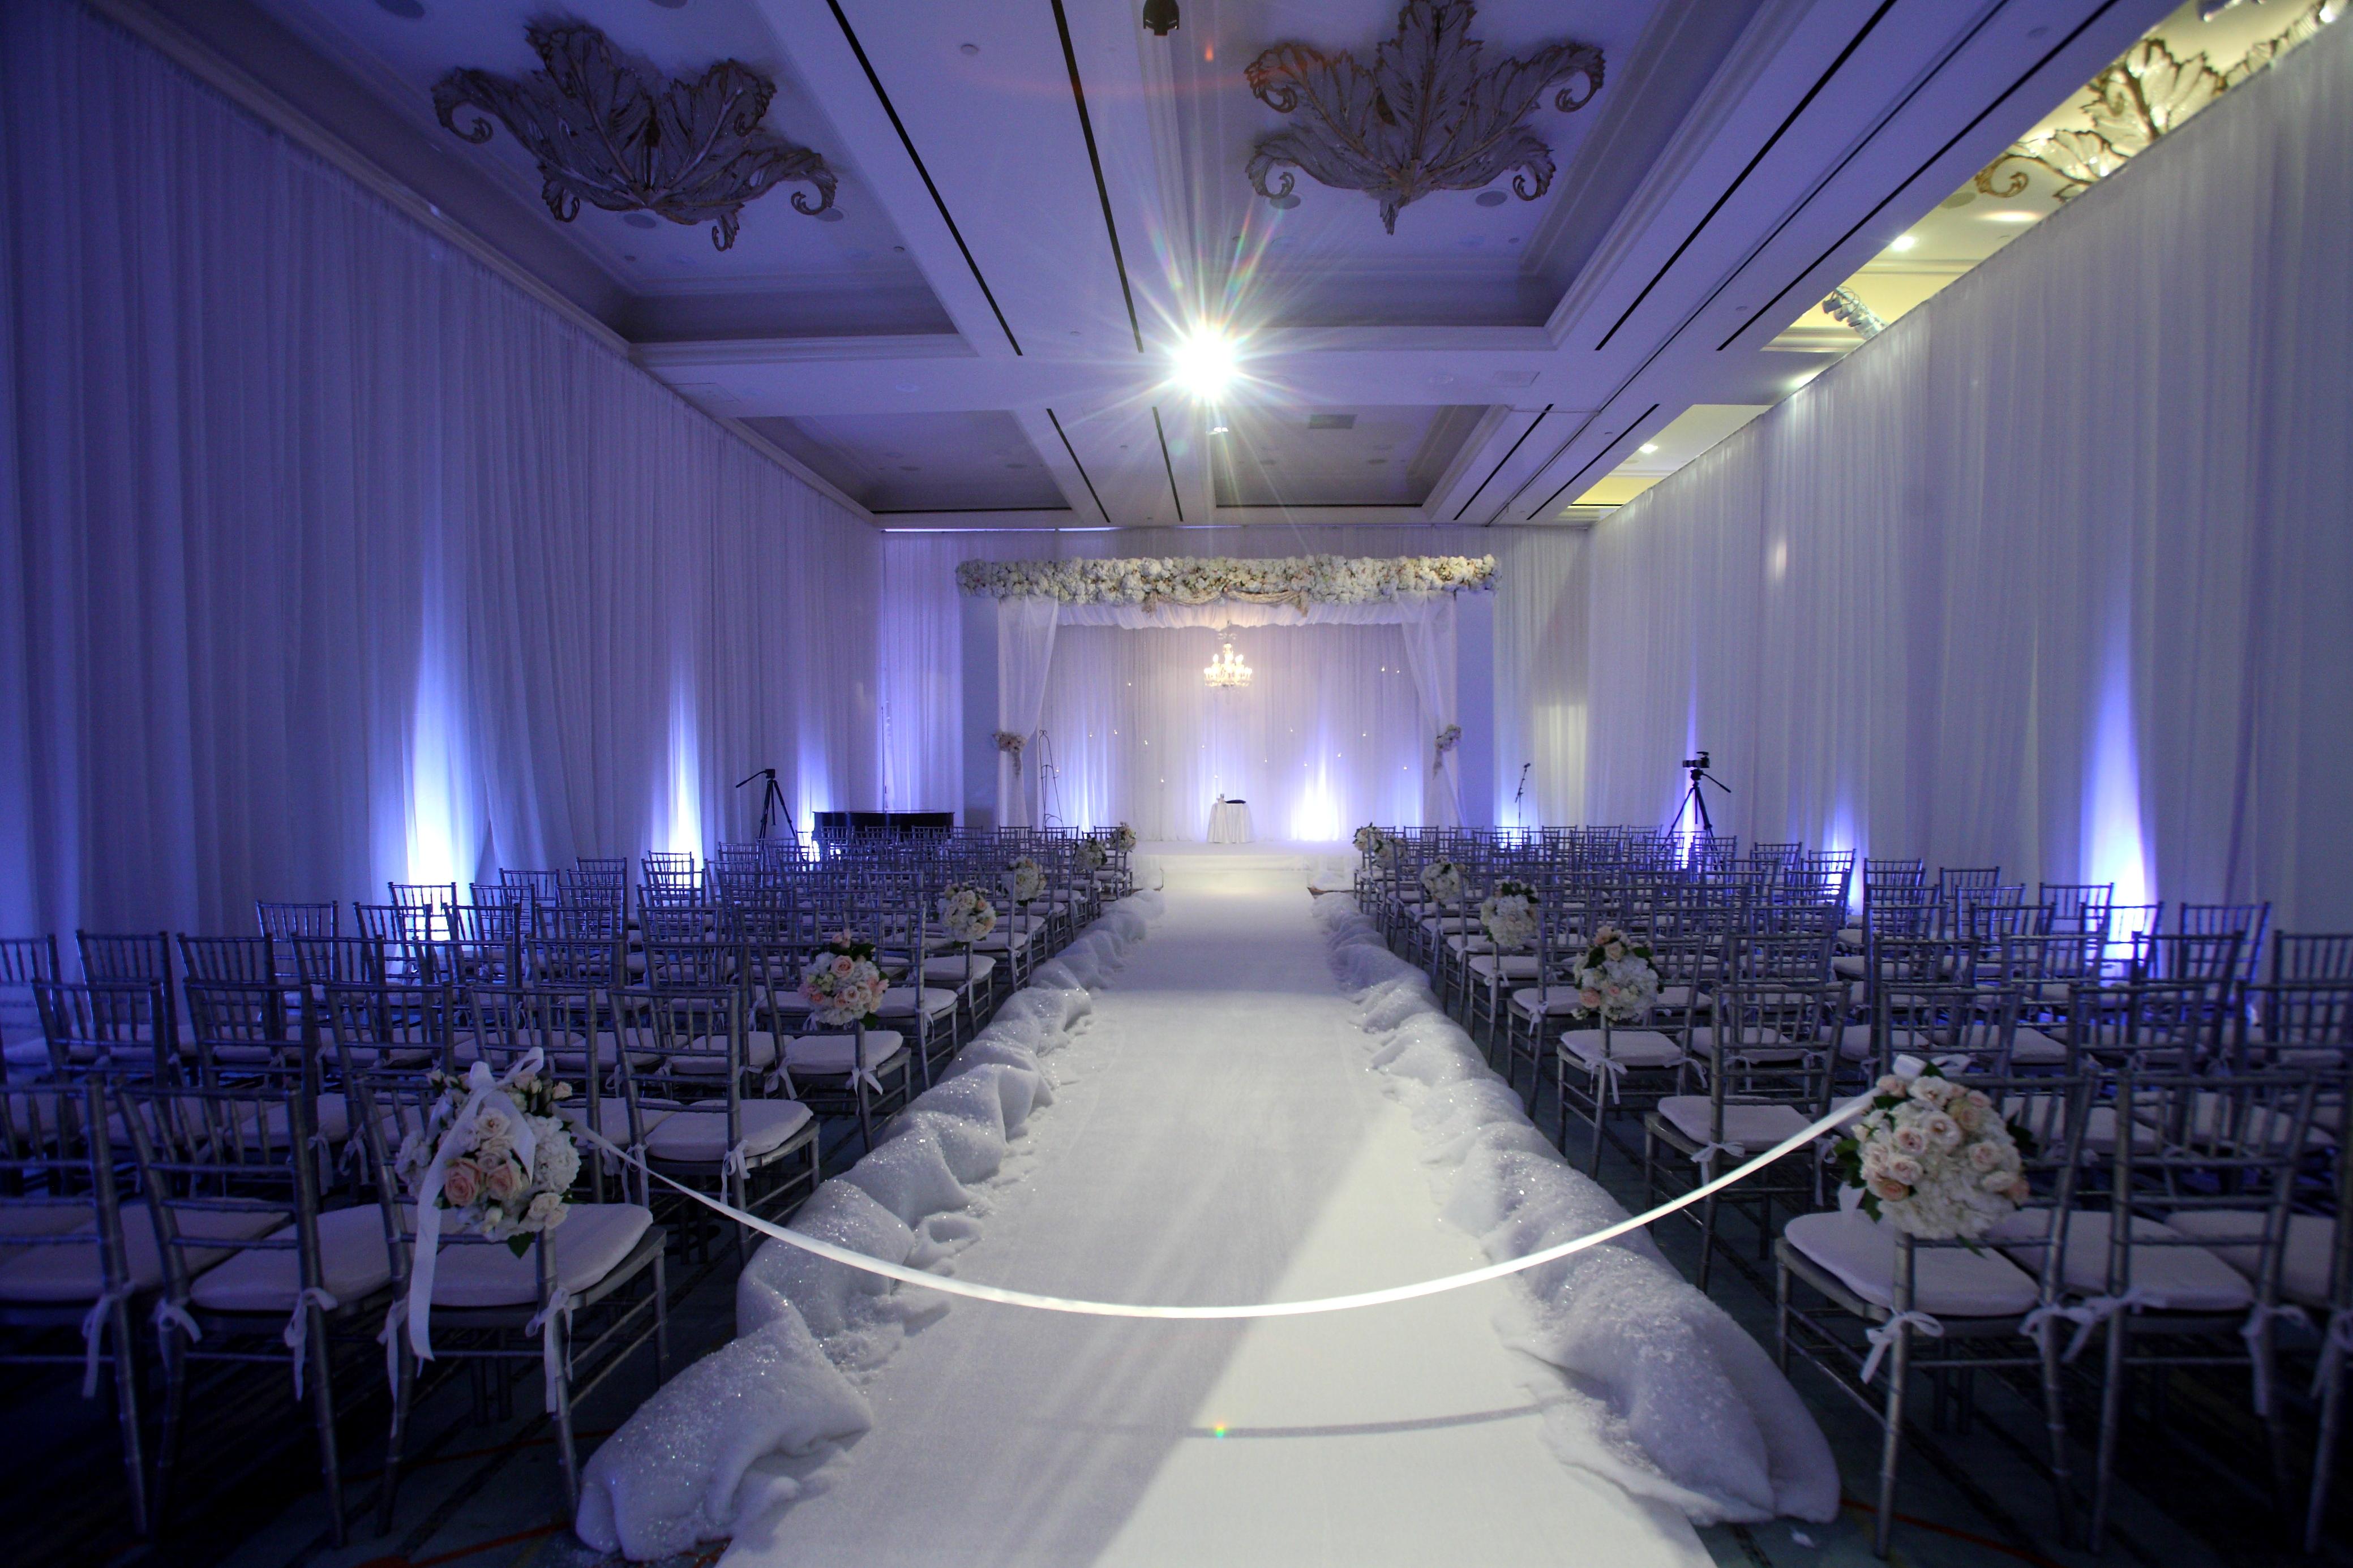 Sokolsky Wedding - As You Wish Events